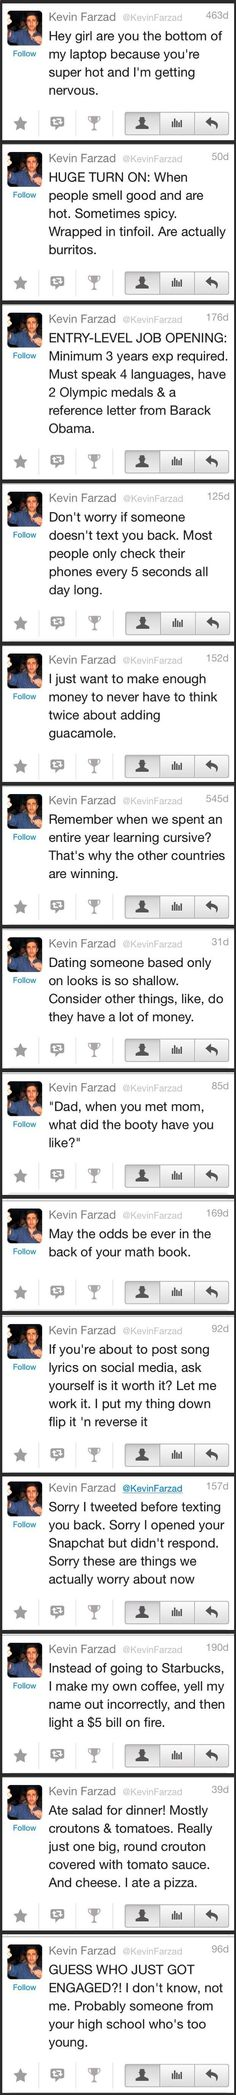 A collection of Kevin Farzad tweets- LMAO!!!